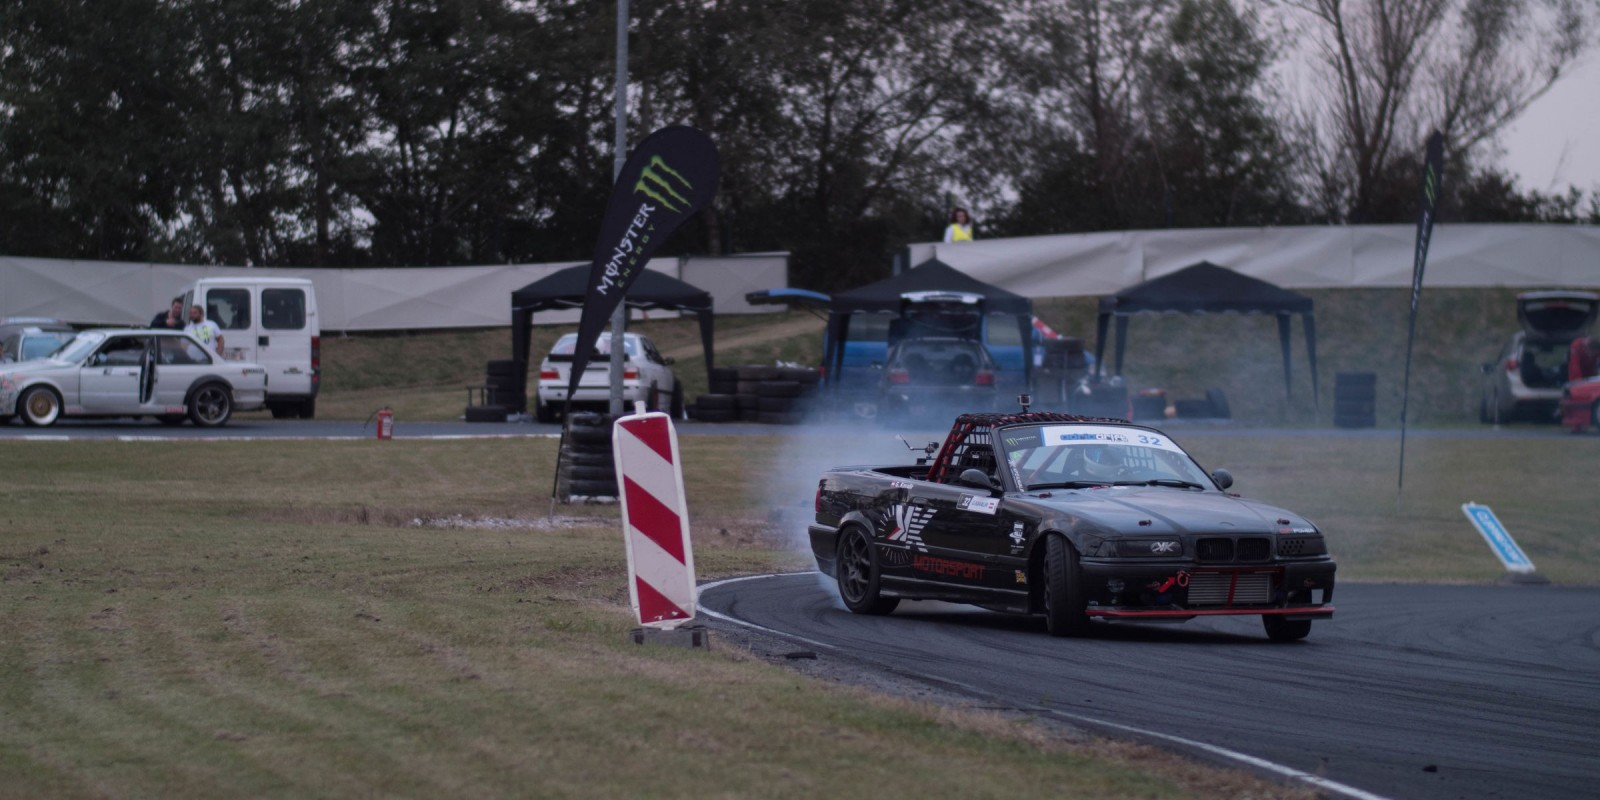 Action shot of from the 2017 Adria Drift Series in Slovenia